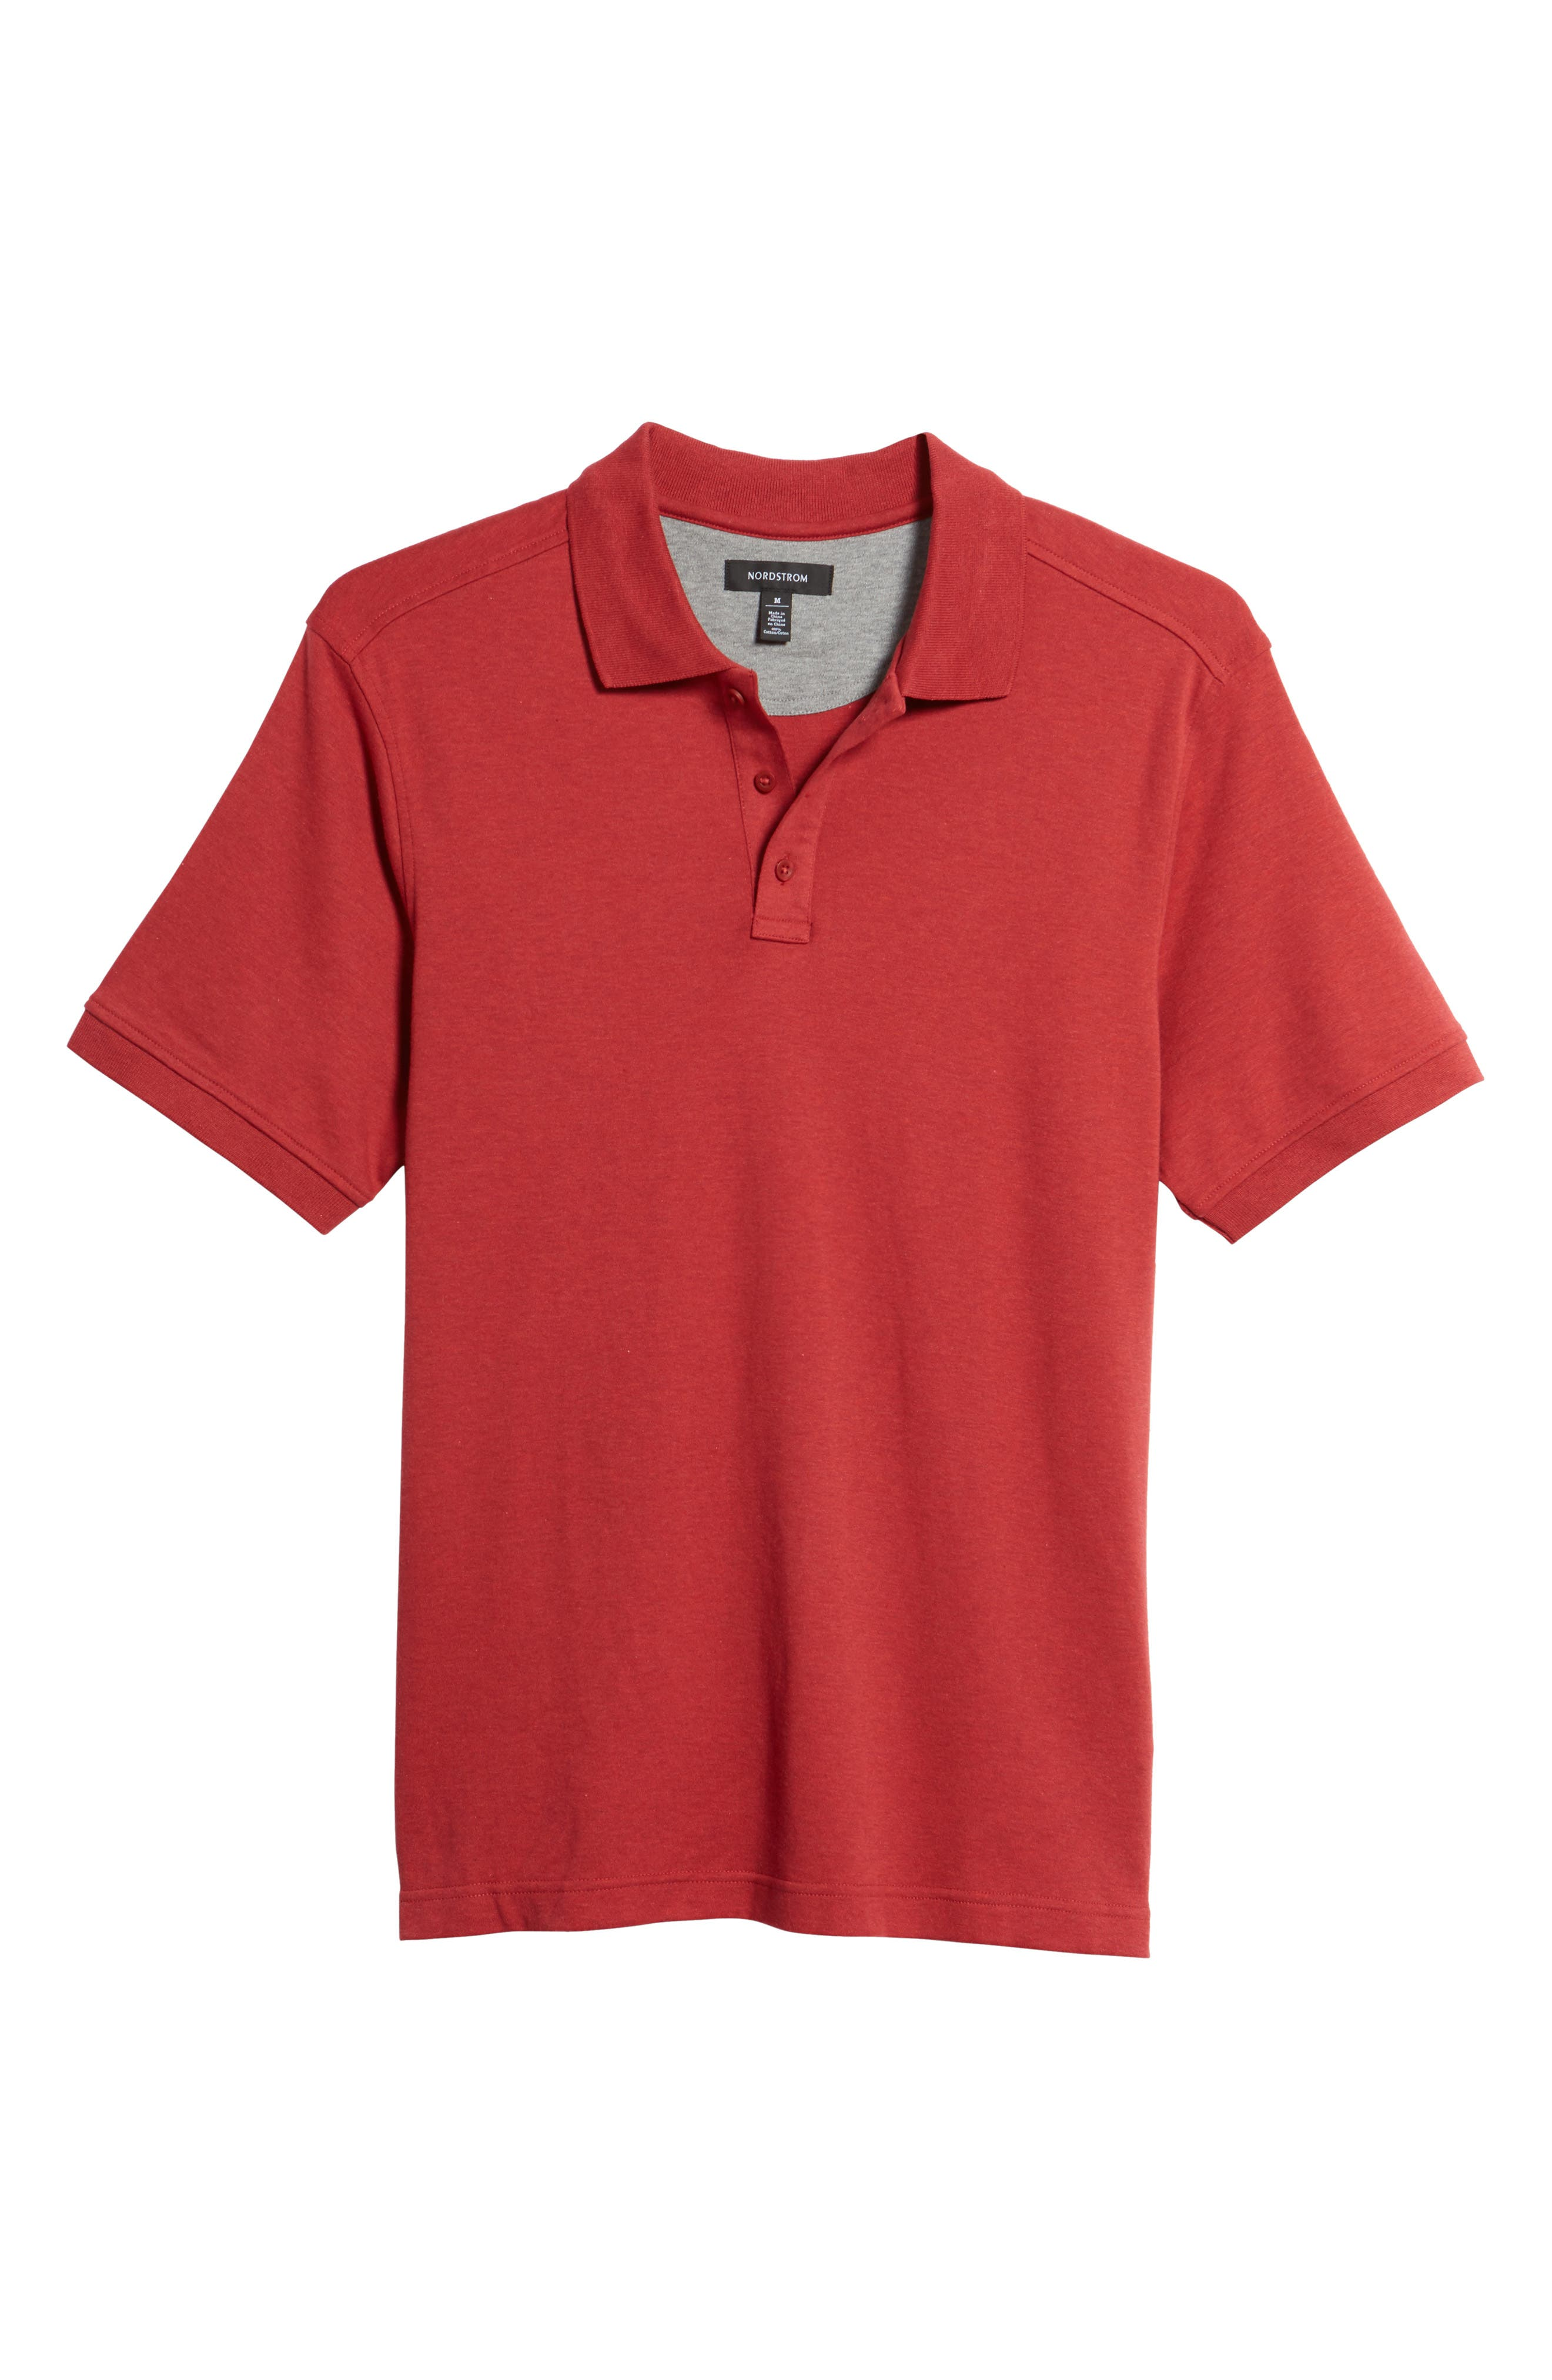 Regular Fit Interlock Knit Polo,                             Main thumbnail 1, color,                             Red Rosewood Heather